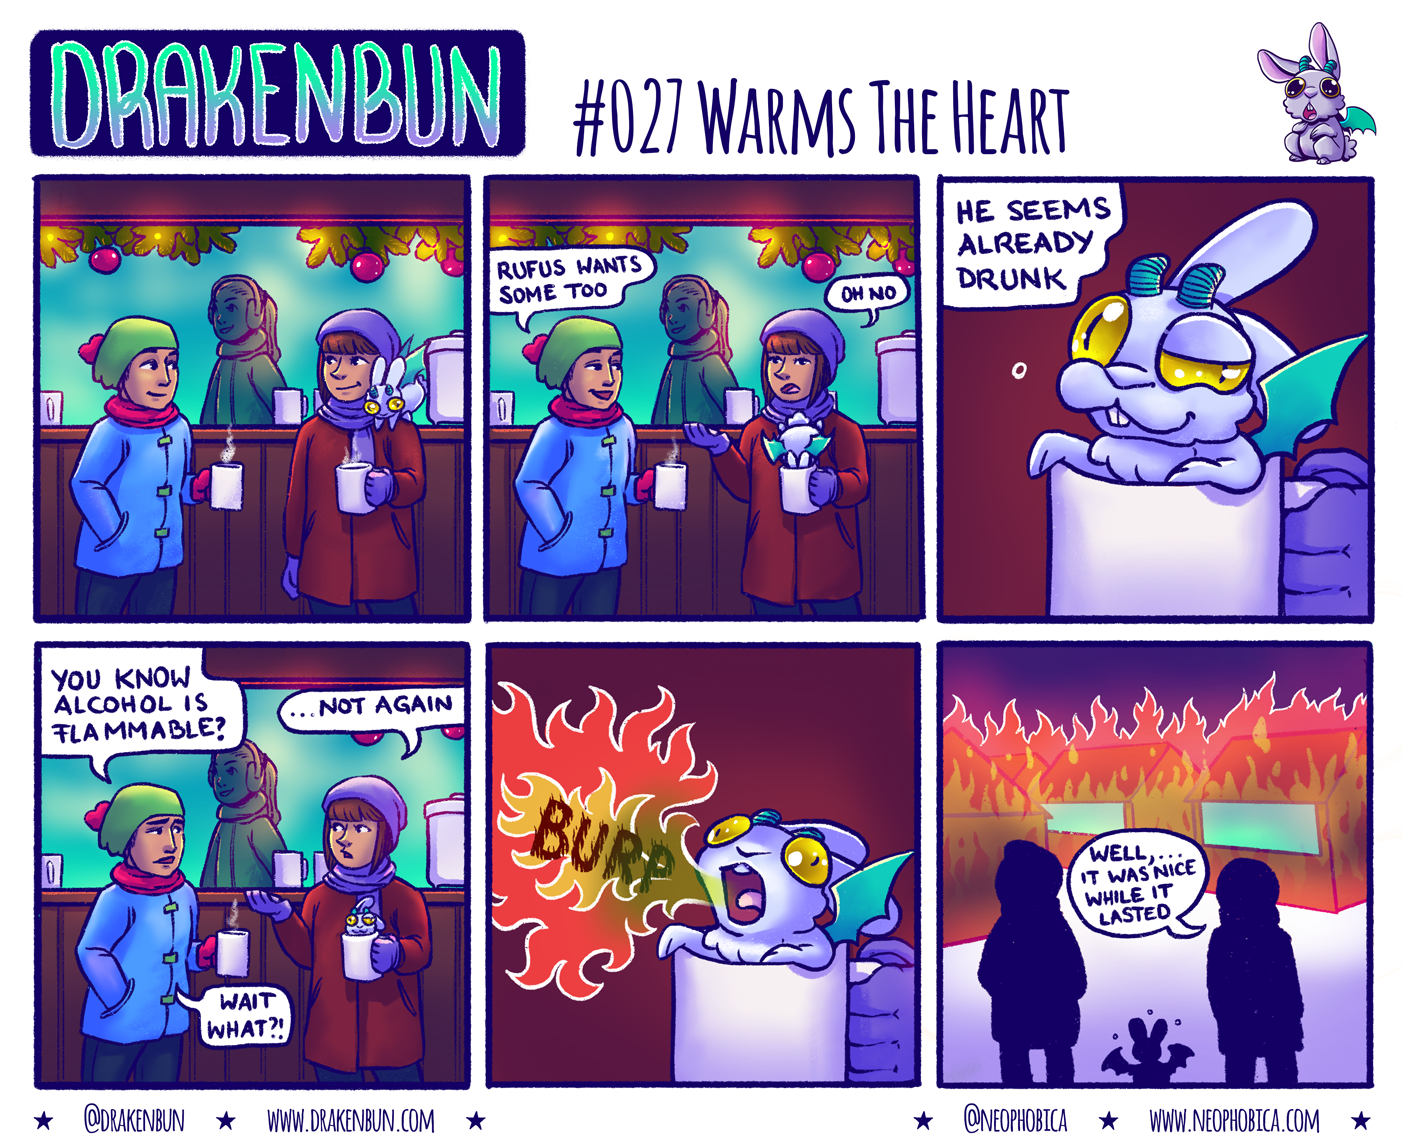 #027 – Warms the Heart